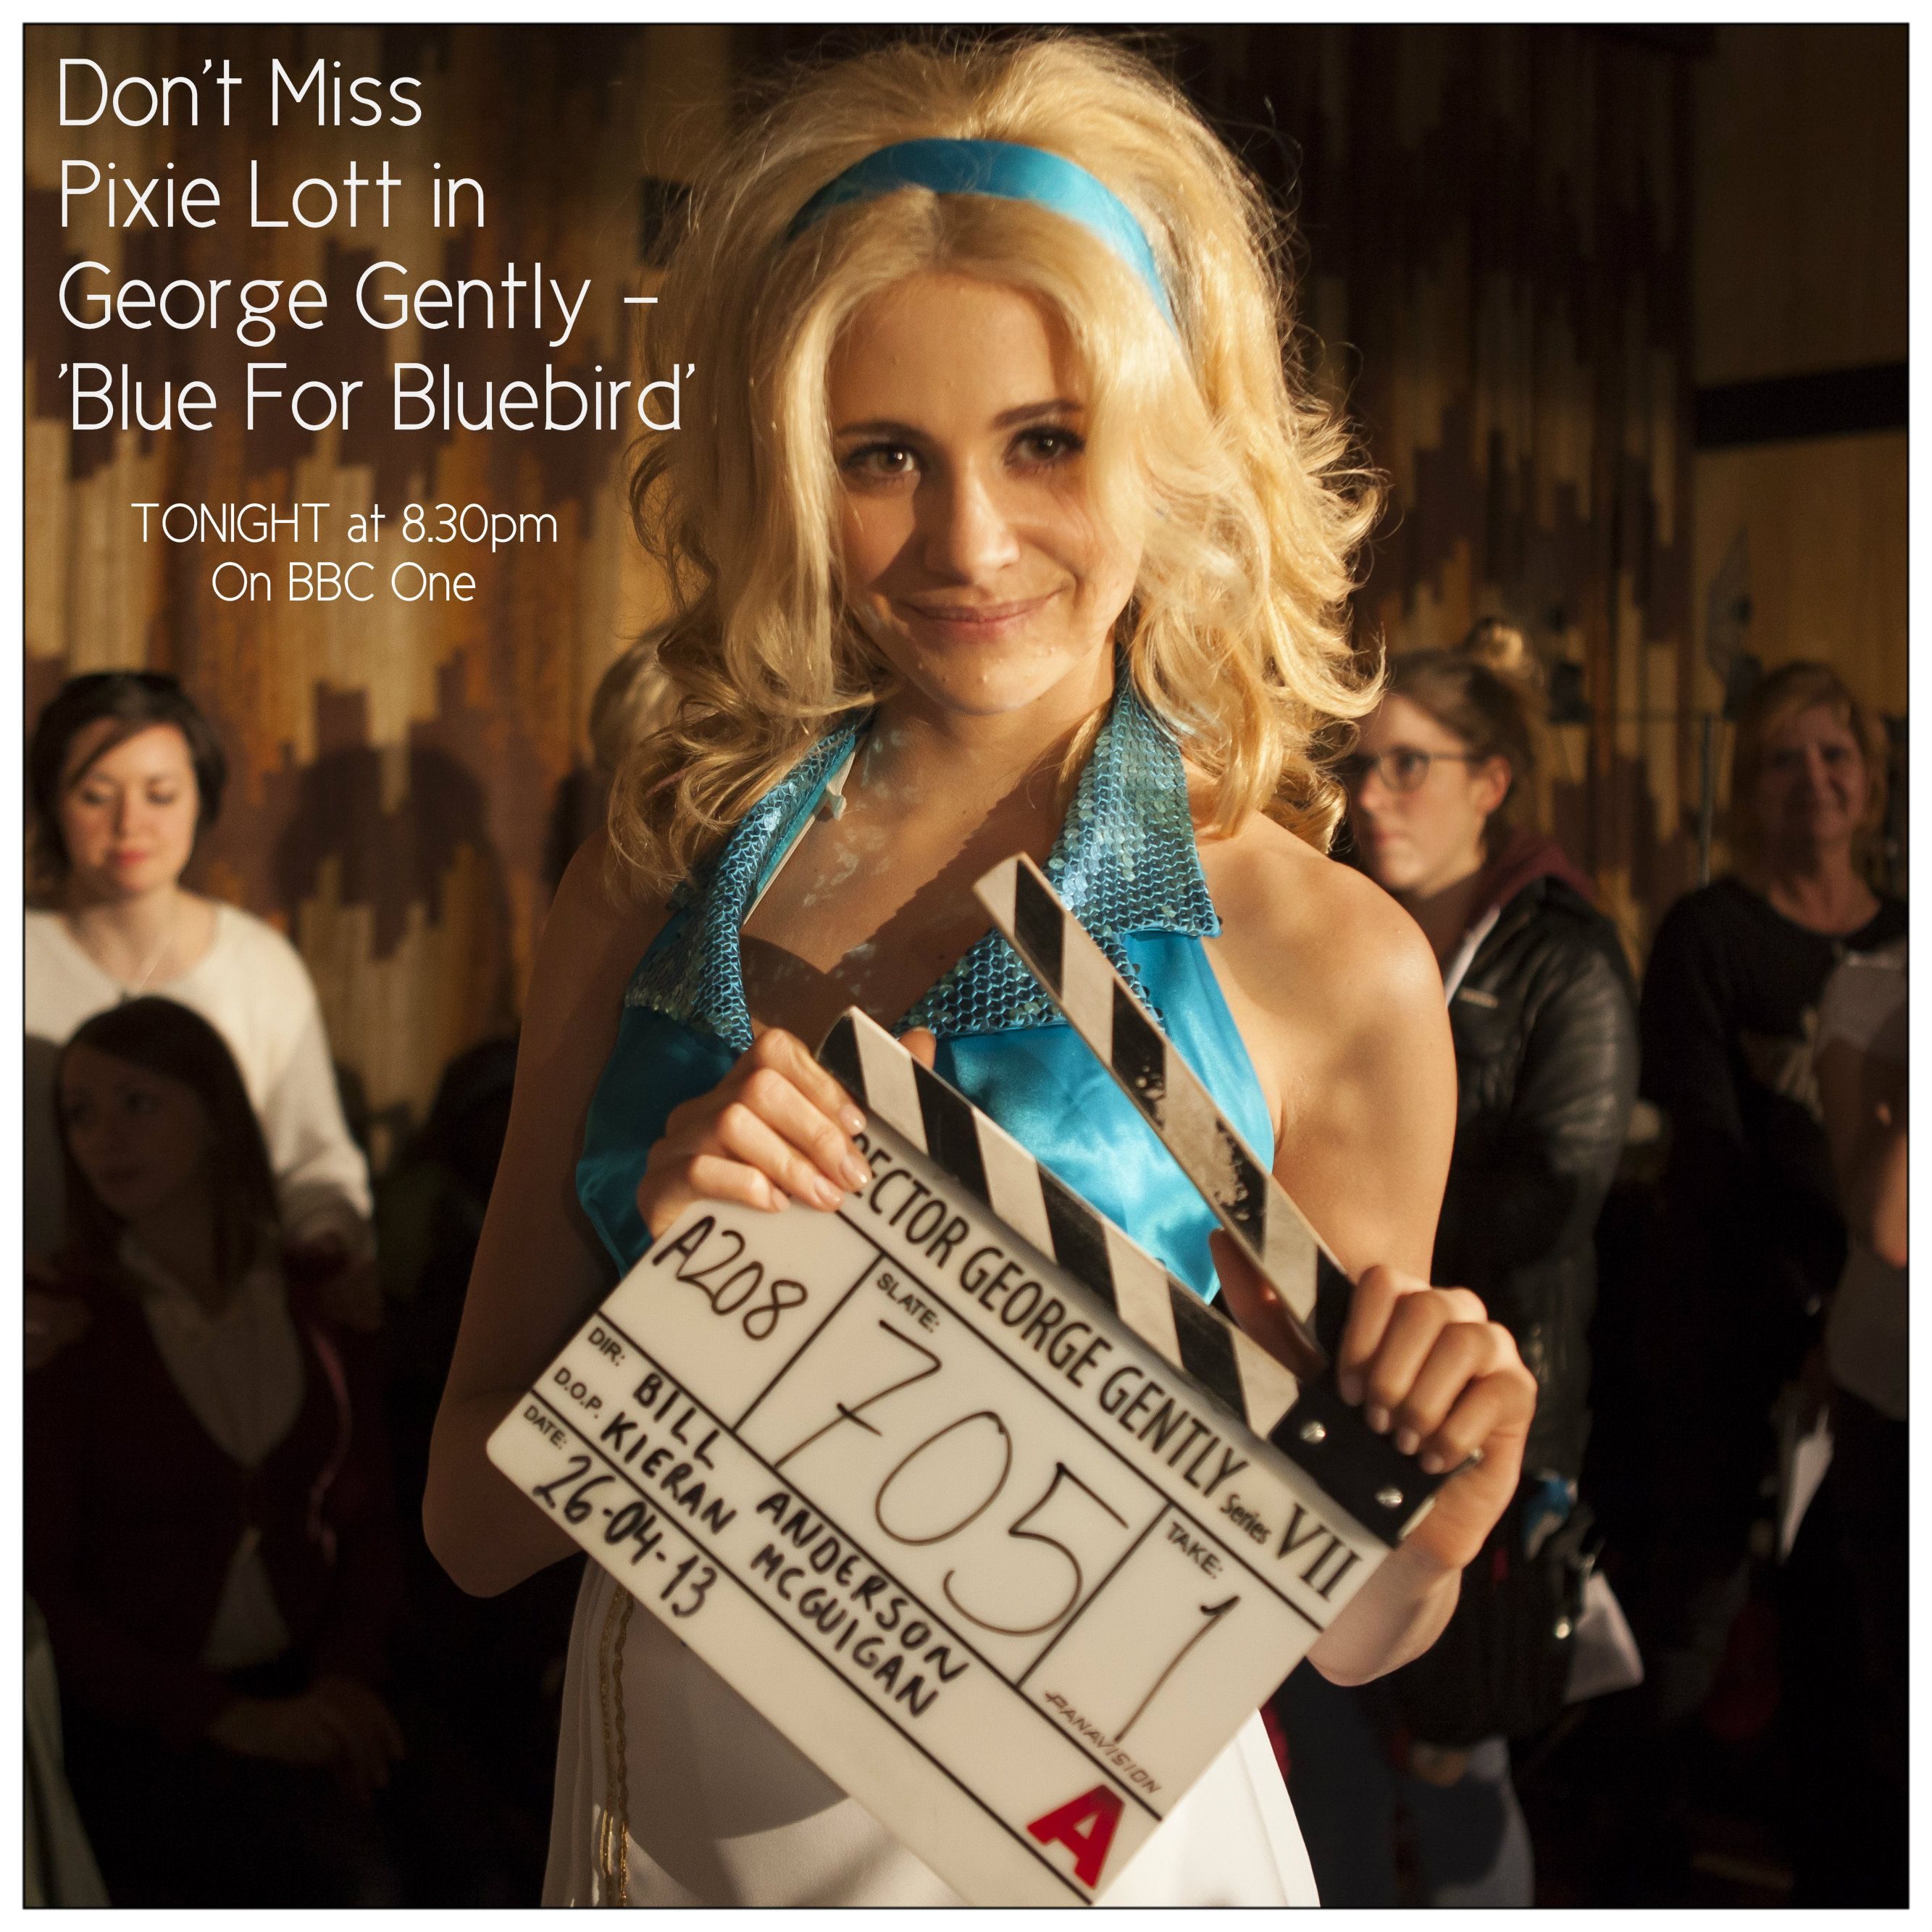 Popstar Pixie Lott Makes Her Dramatic Television Debut Tonight In Inspector George Gently Blue For Bluebird At 8 30pm On Bbc One